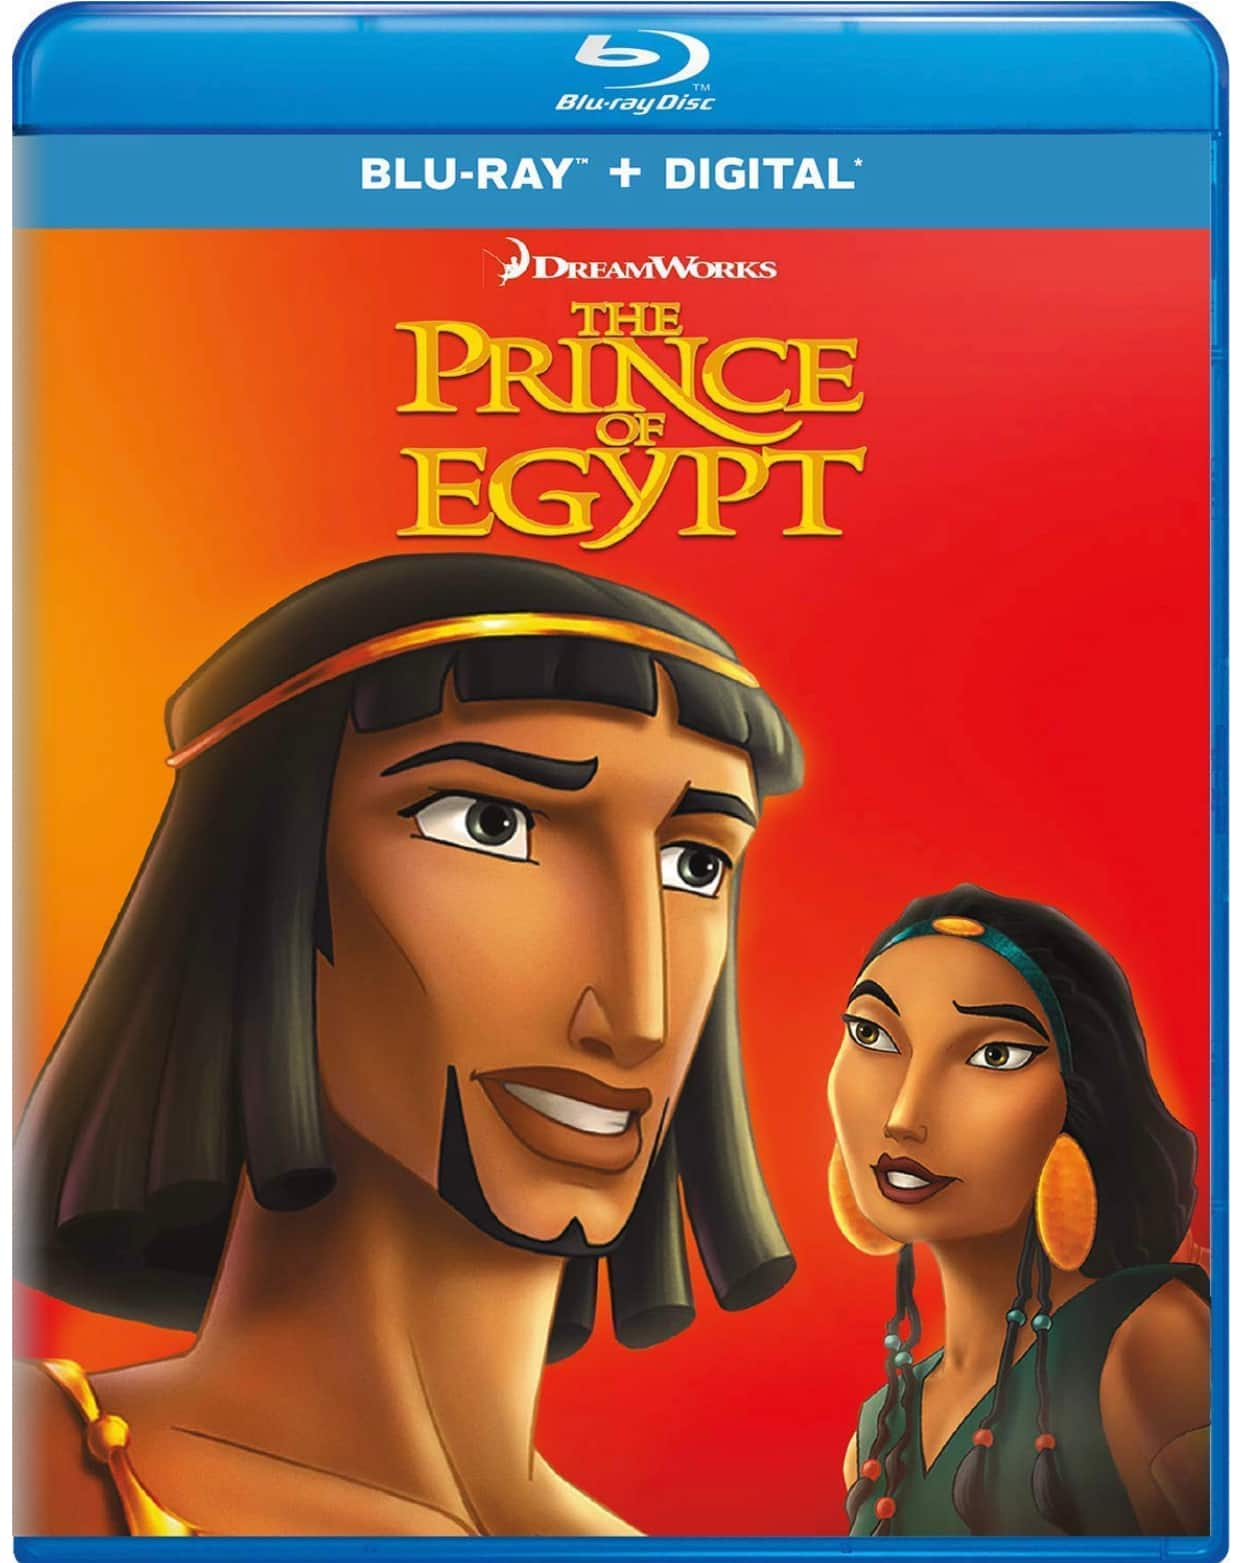 The Prince of Egypt or The Lorax or Flushed Away (Blu-ray + Digital) $7 @ Best Buy